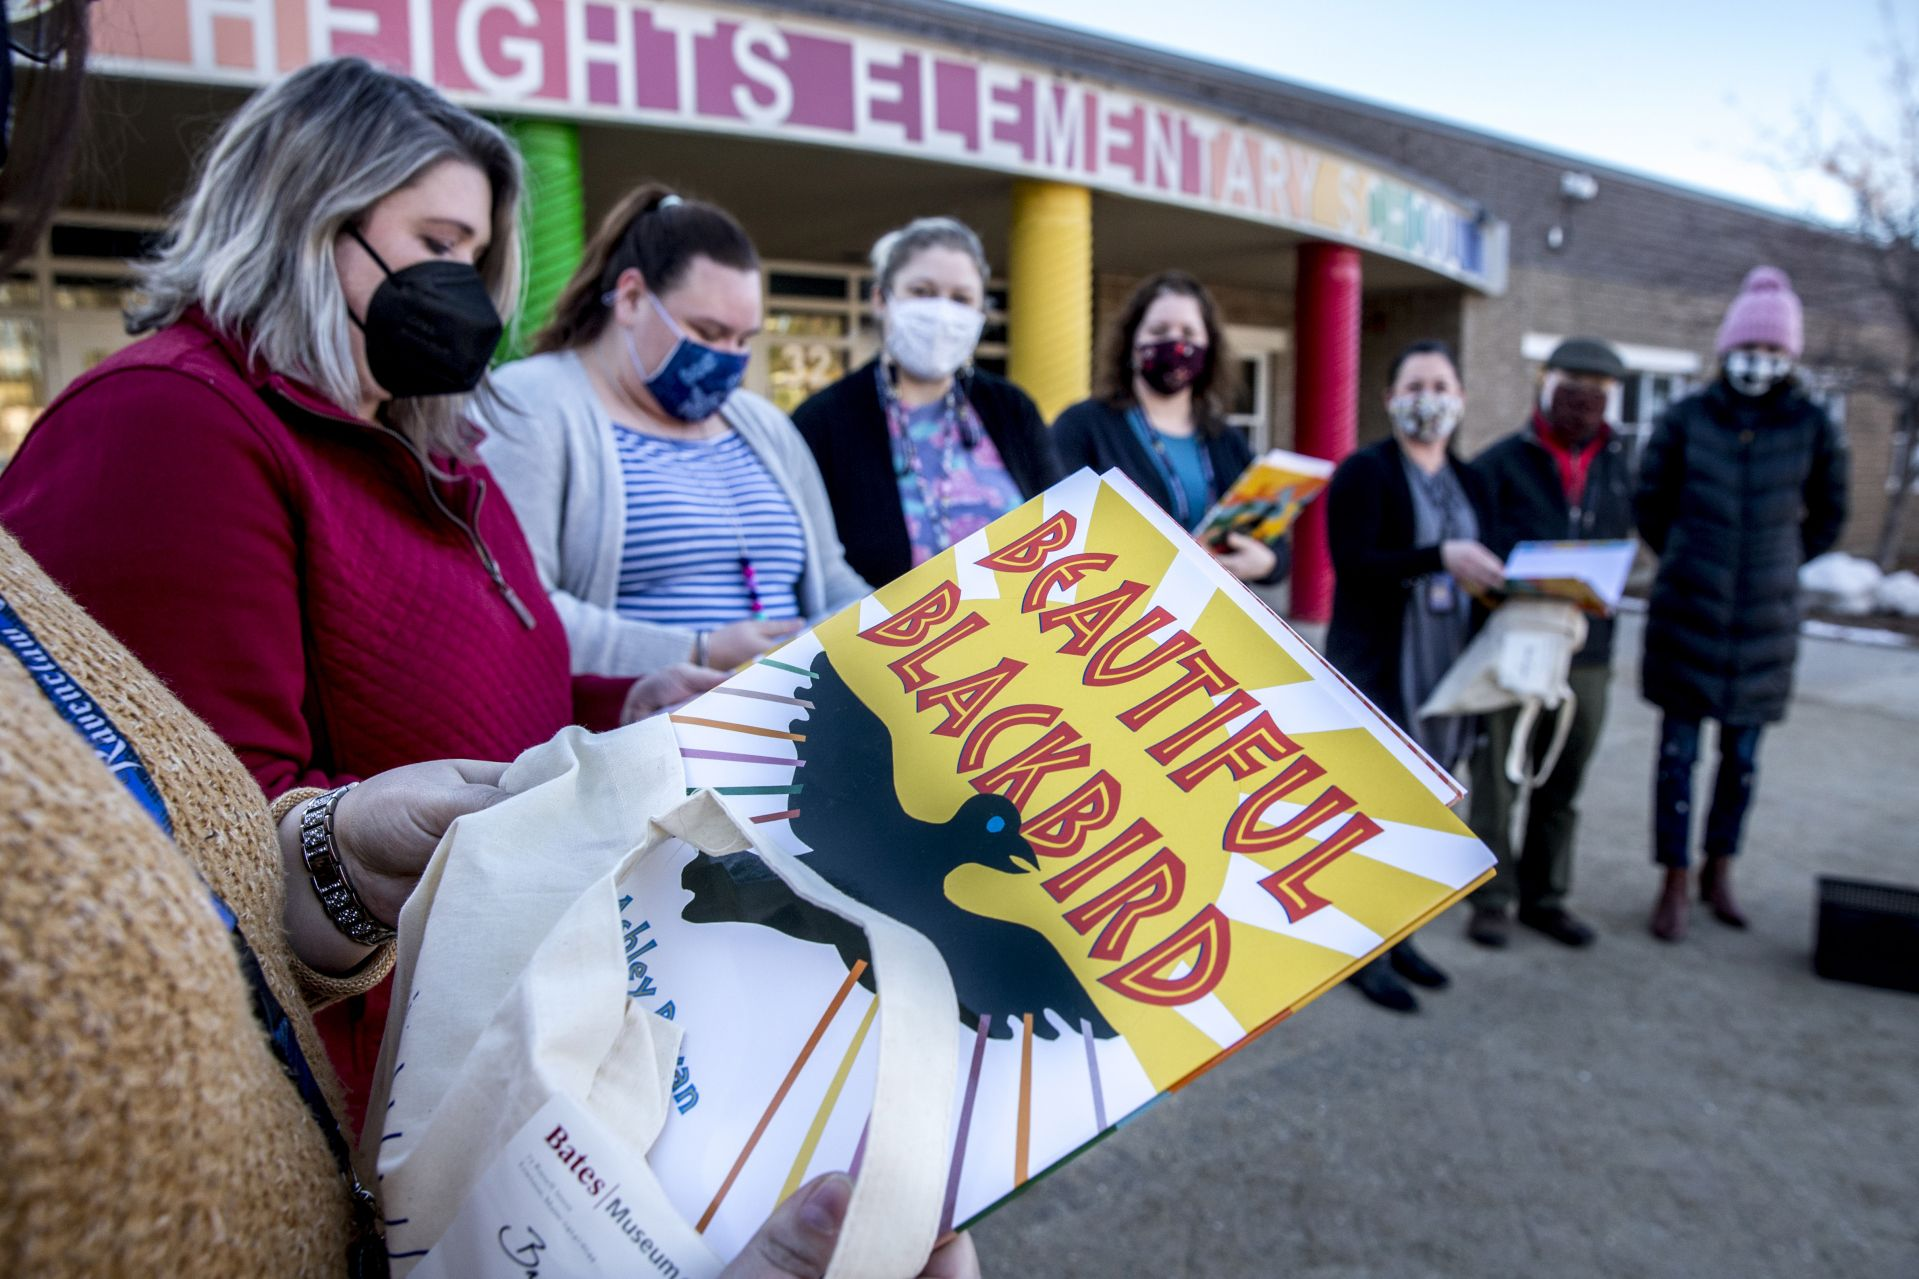 """Sherwood Heights Elementary School teachers line up in front of the Auburn school as they receive their Ashley Bryan """"swag bags"""" delivered by the Bates College Museum of Art.   The museum has Beautiful Blackbird Festival bags to distribute to local pre-K-2 teachers, in connection to the museum's exhibition""""Let's Celebrate Ashley Bryan!"""" and in cooperation with Indigo Arts Alliance.  Each bag contains a copy of Bryan's book """"Beautiful Blackbird,"""" grade appropriate activities developed by Indigo Arts, and information about the museum's collections and programs.  From left to right: Breann Crocker, Jessica Sweetser, Skylar Cambidge, Kayla Grier, Jennifer Libby, Renee Langis, and from the Museum, Assistant Education Curator for Academic & Community Programs Caitlin Patton, and Education Curator Anthony Shostak."""